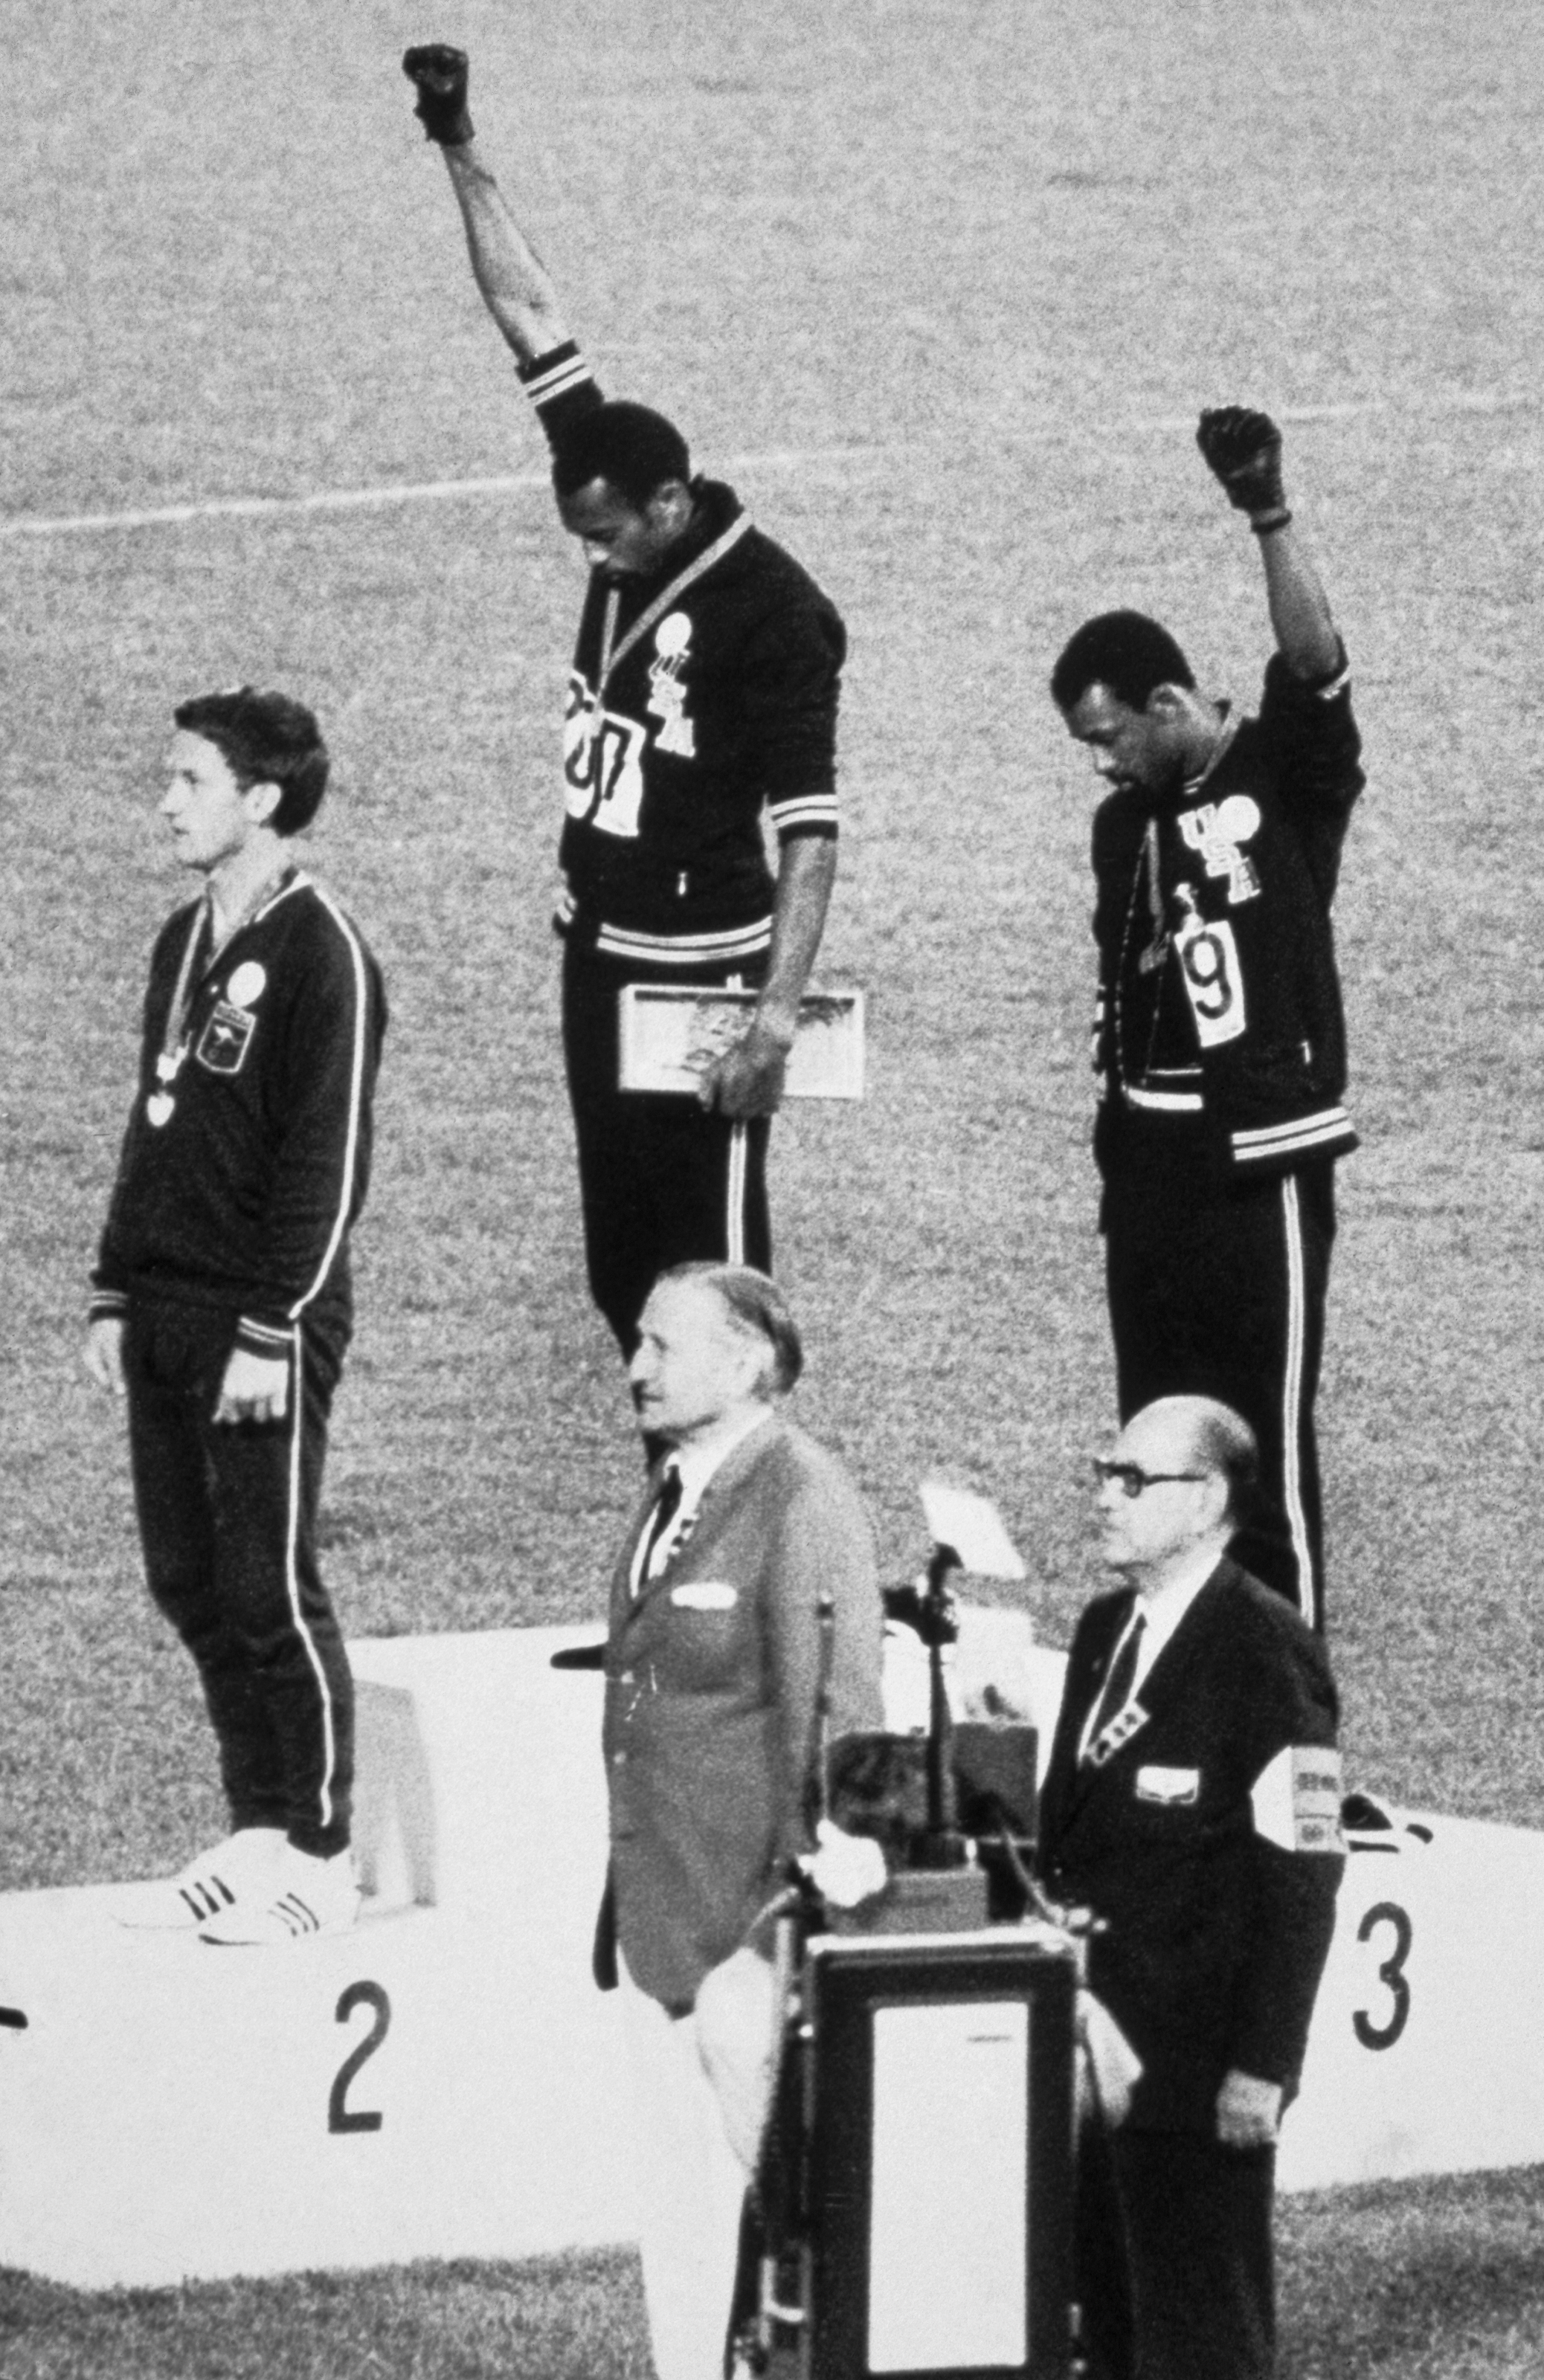 Tommi Smith John Carlos fists raised and Peter Norman  1968 Summer Olympics  Bettmann Getty Images